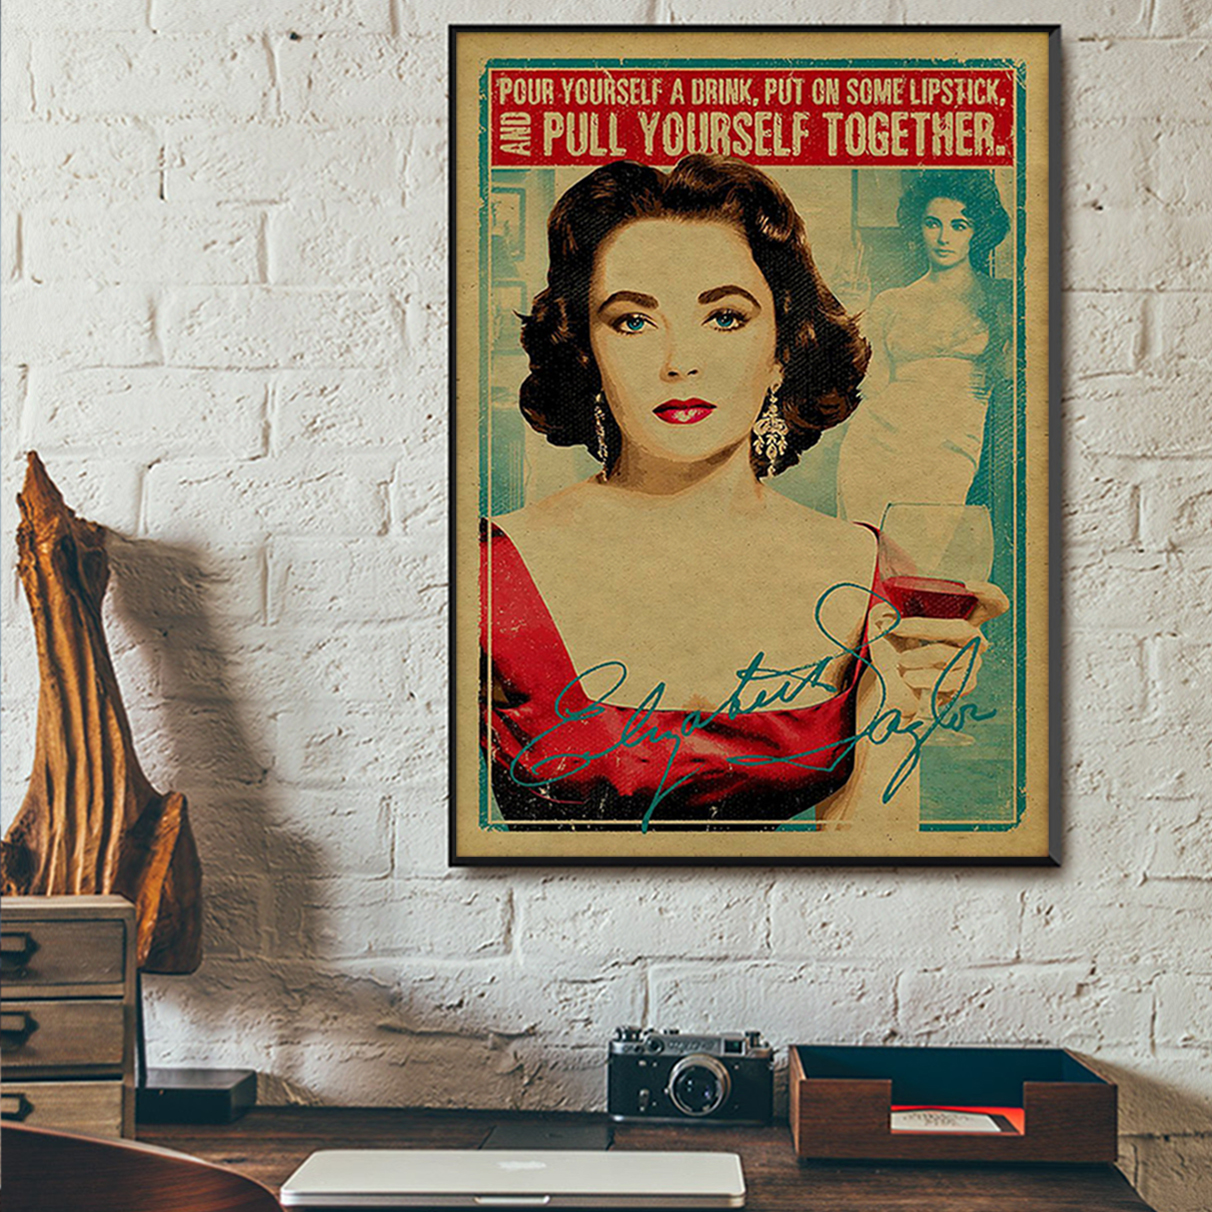 Elizabeth taylor pour yourself a drink put on some lipstick poster A3